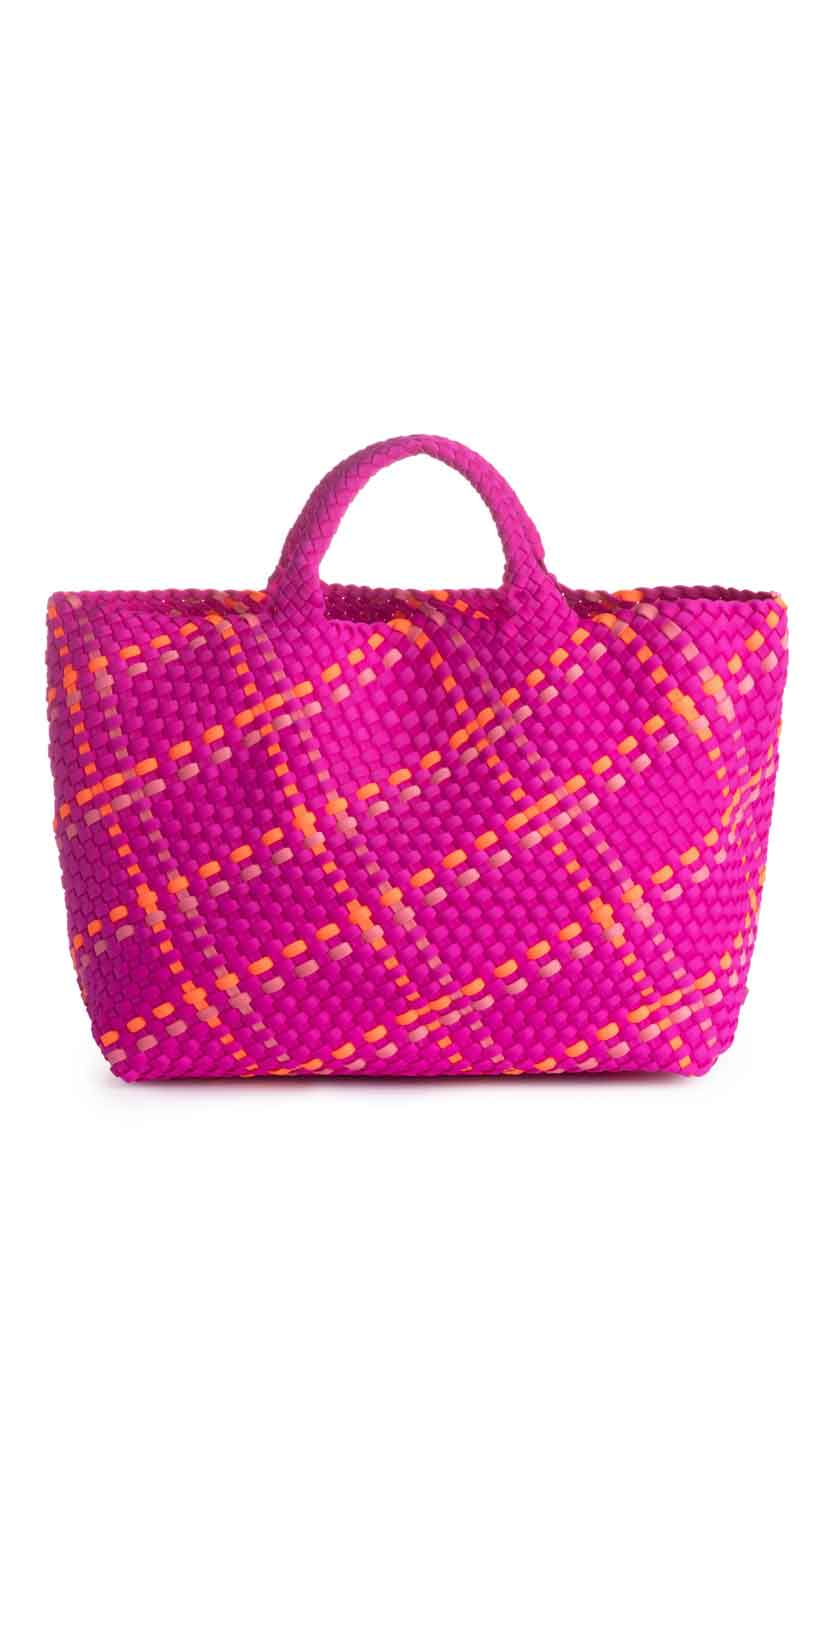 Deux Lux St. Barths Large Tote in Sunset: